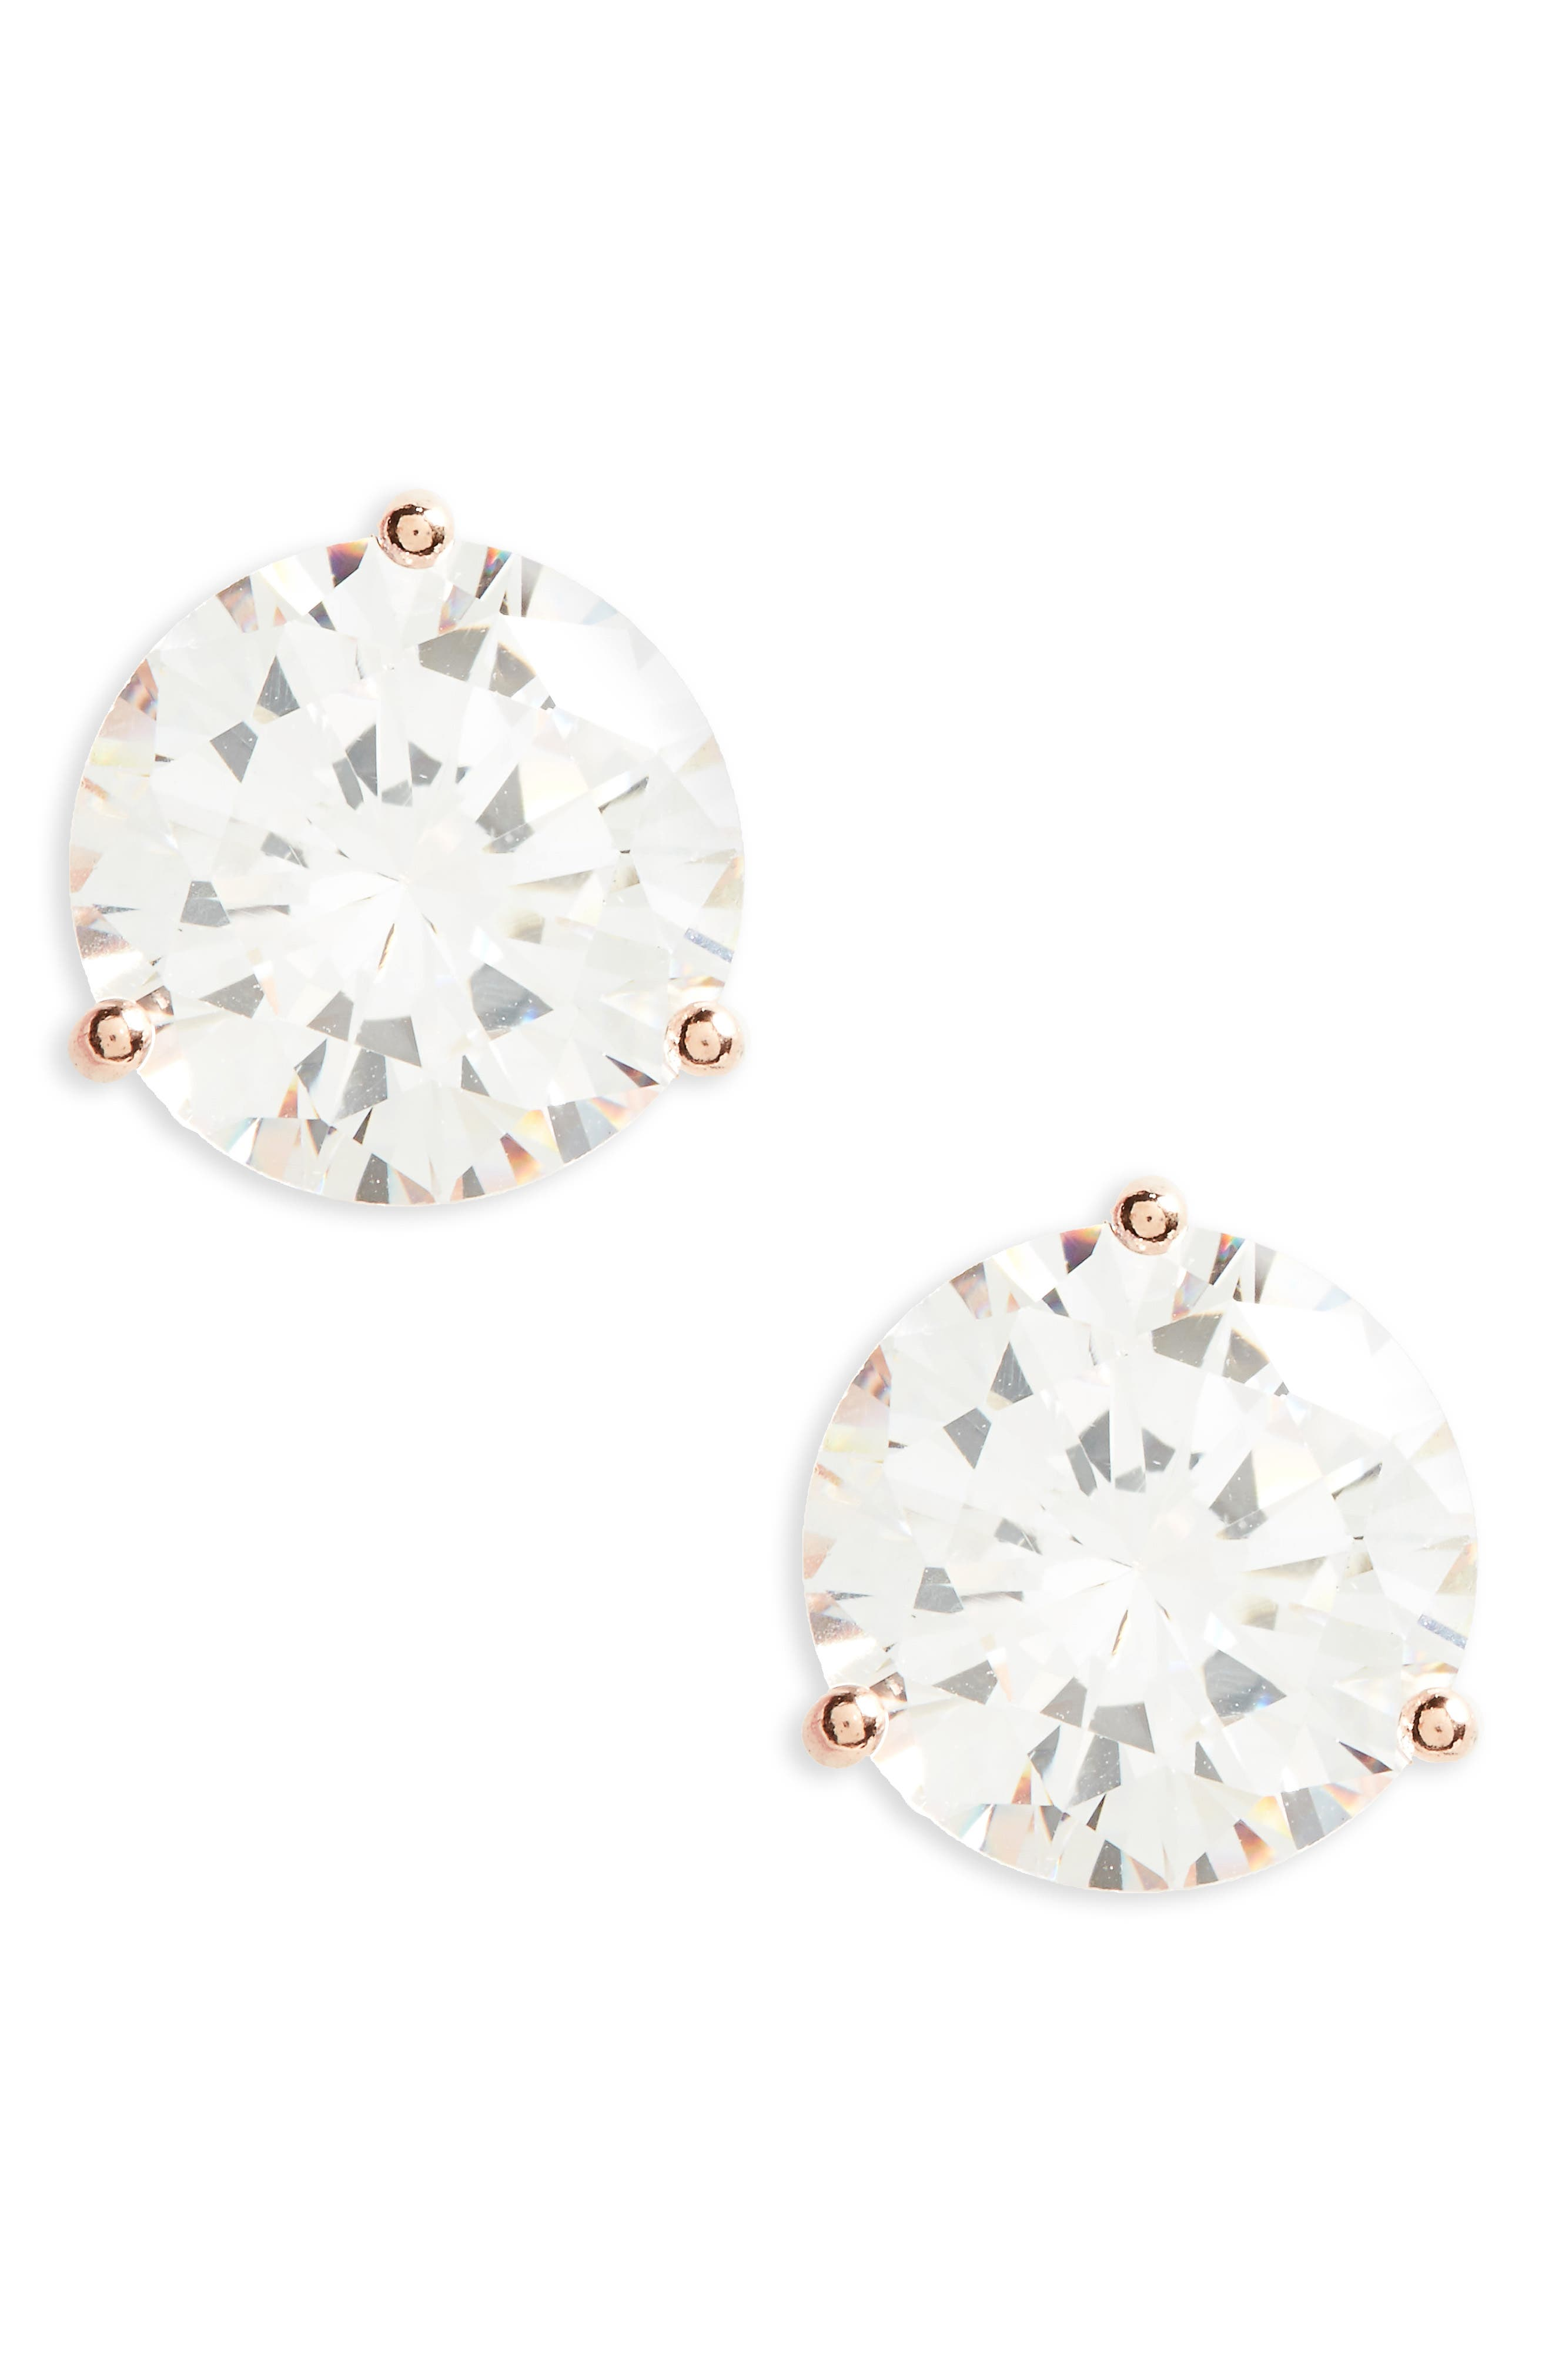 8ct tw Cubic Zirconia Stud Earrings,                         Main,                         color, 650